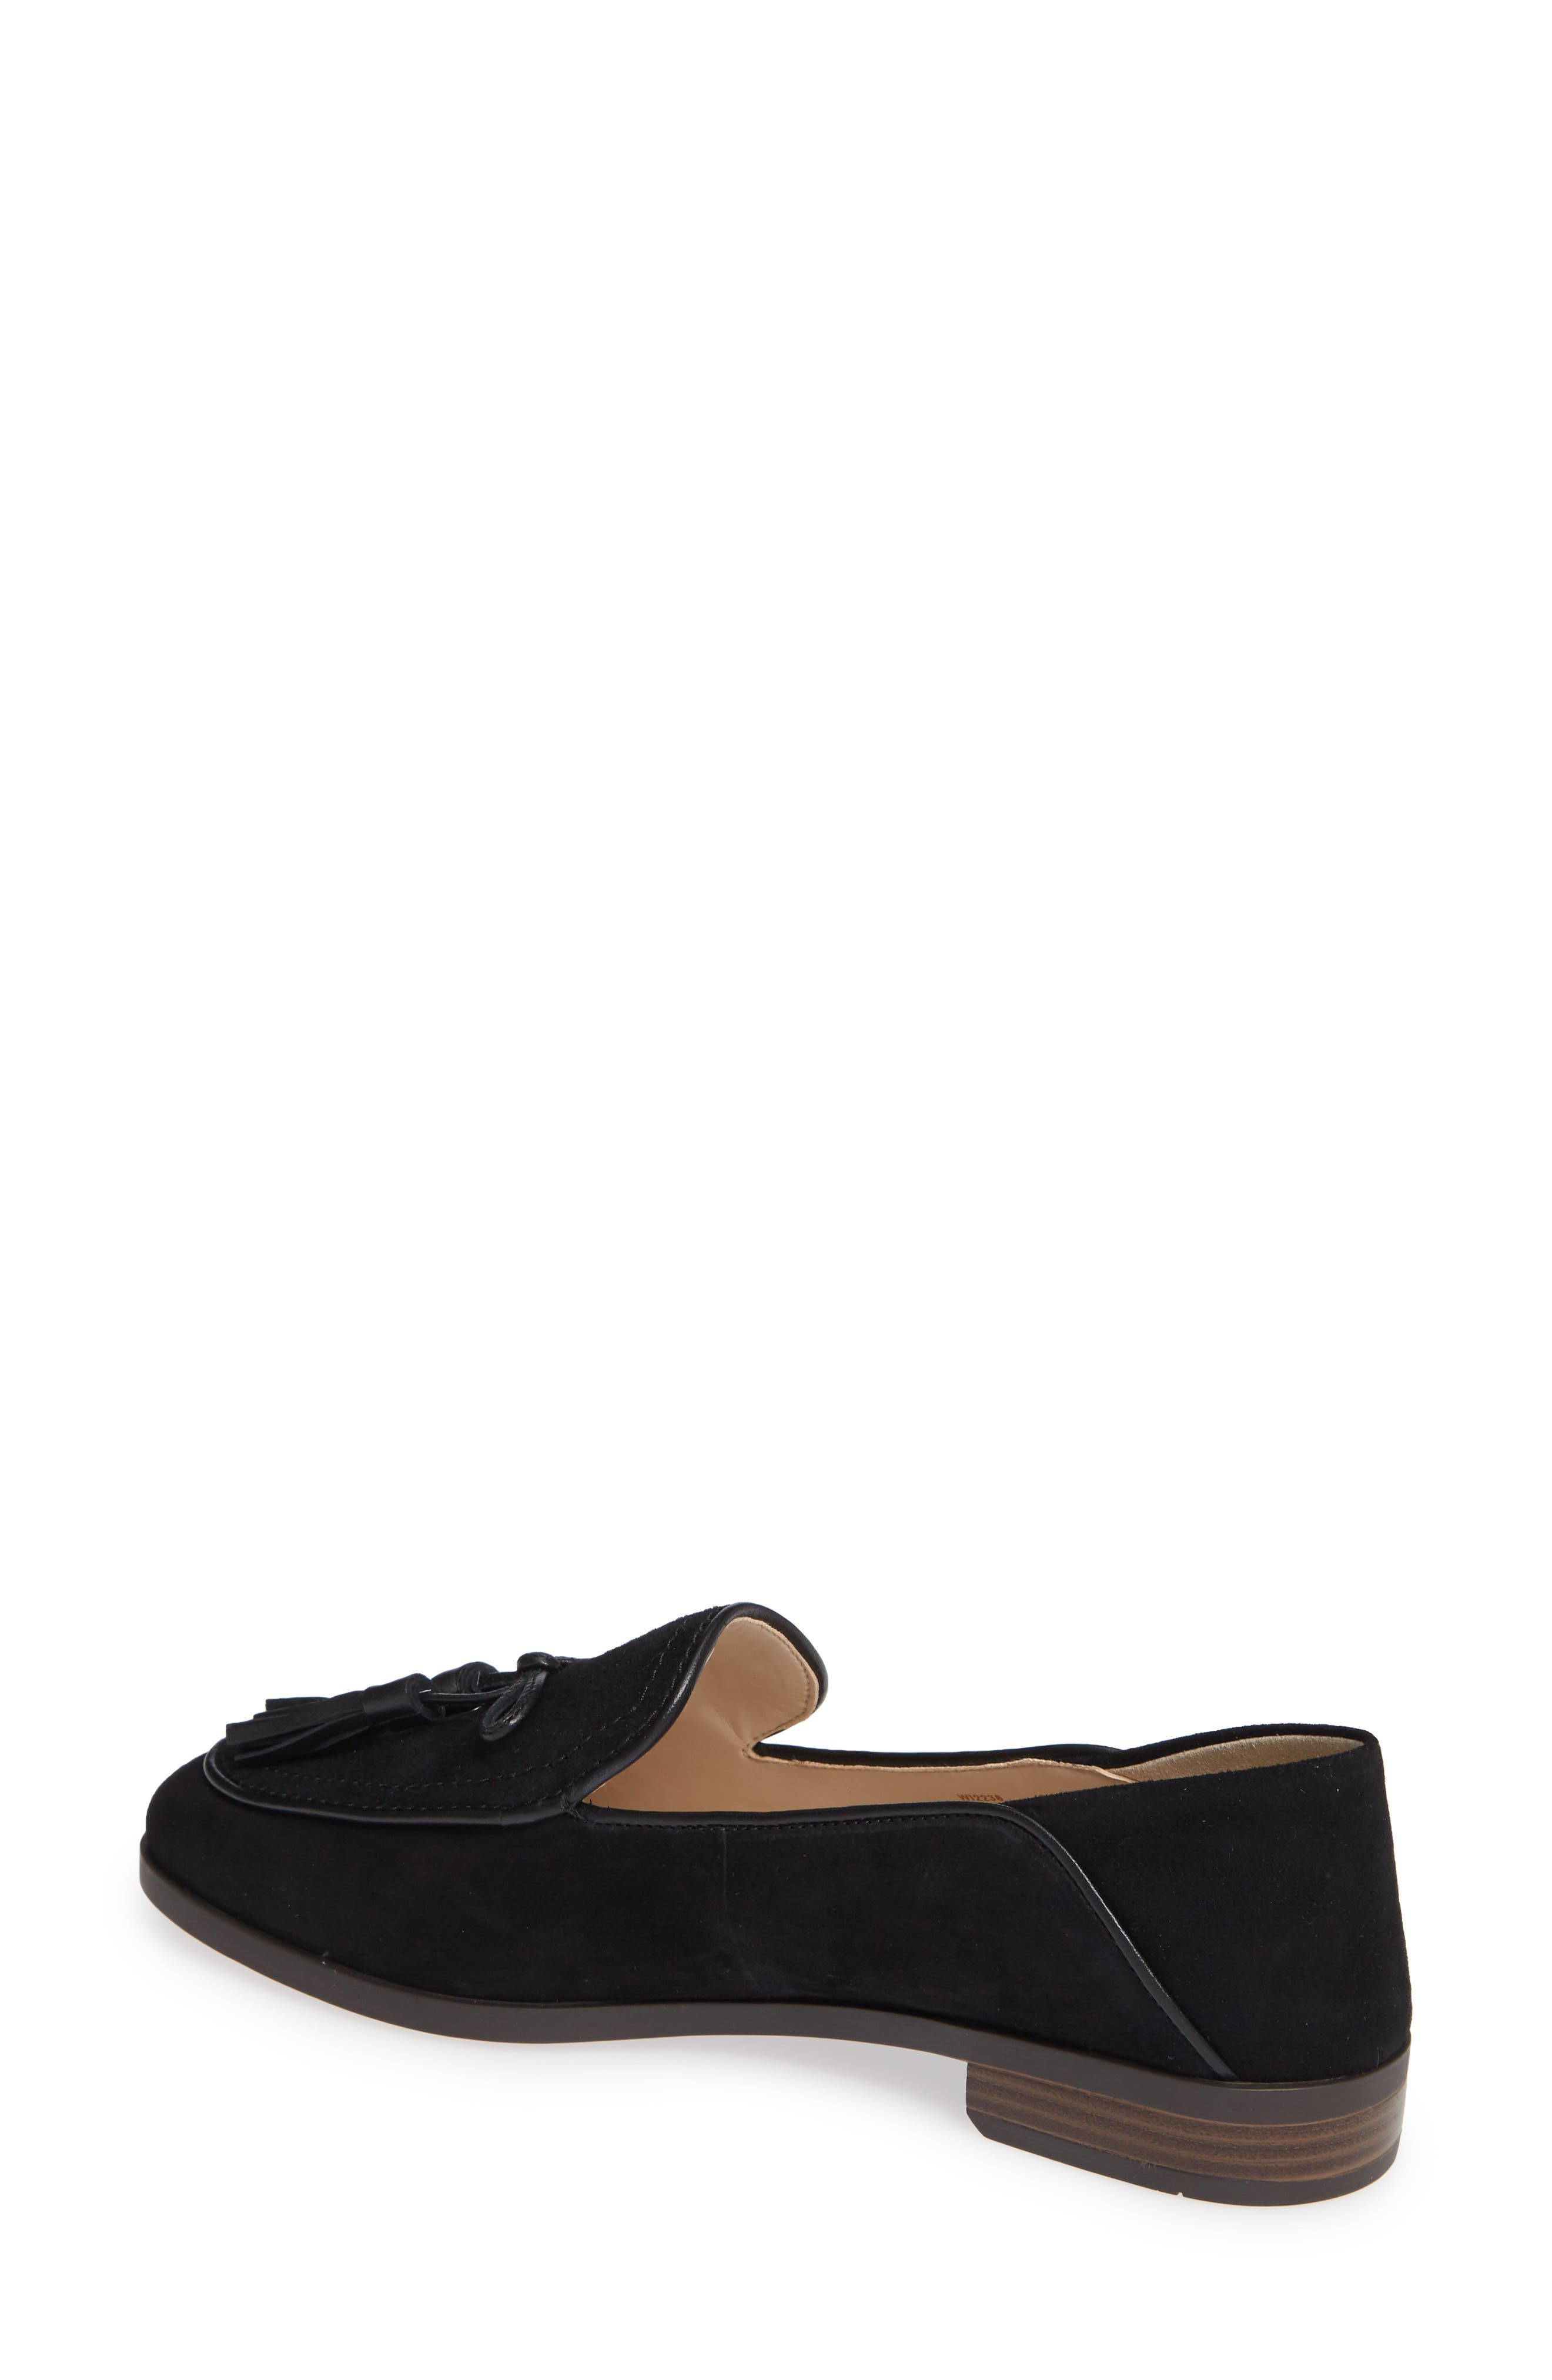 COLE HAAN, Gabrielle Loafer, Alternate thumbnail 2, color, BLACK SUEDE